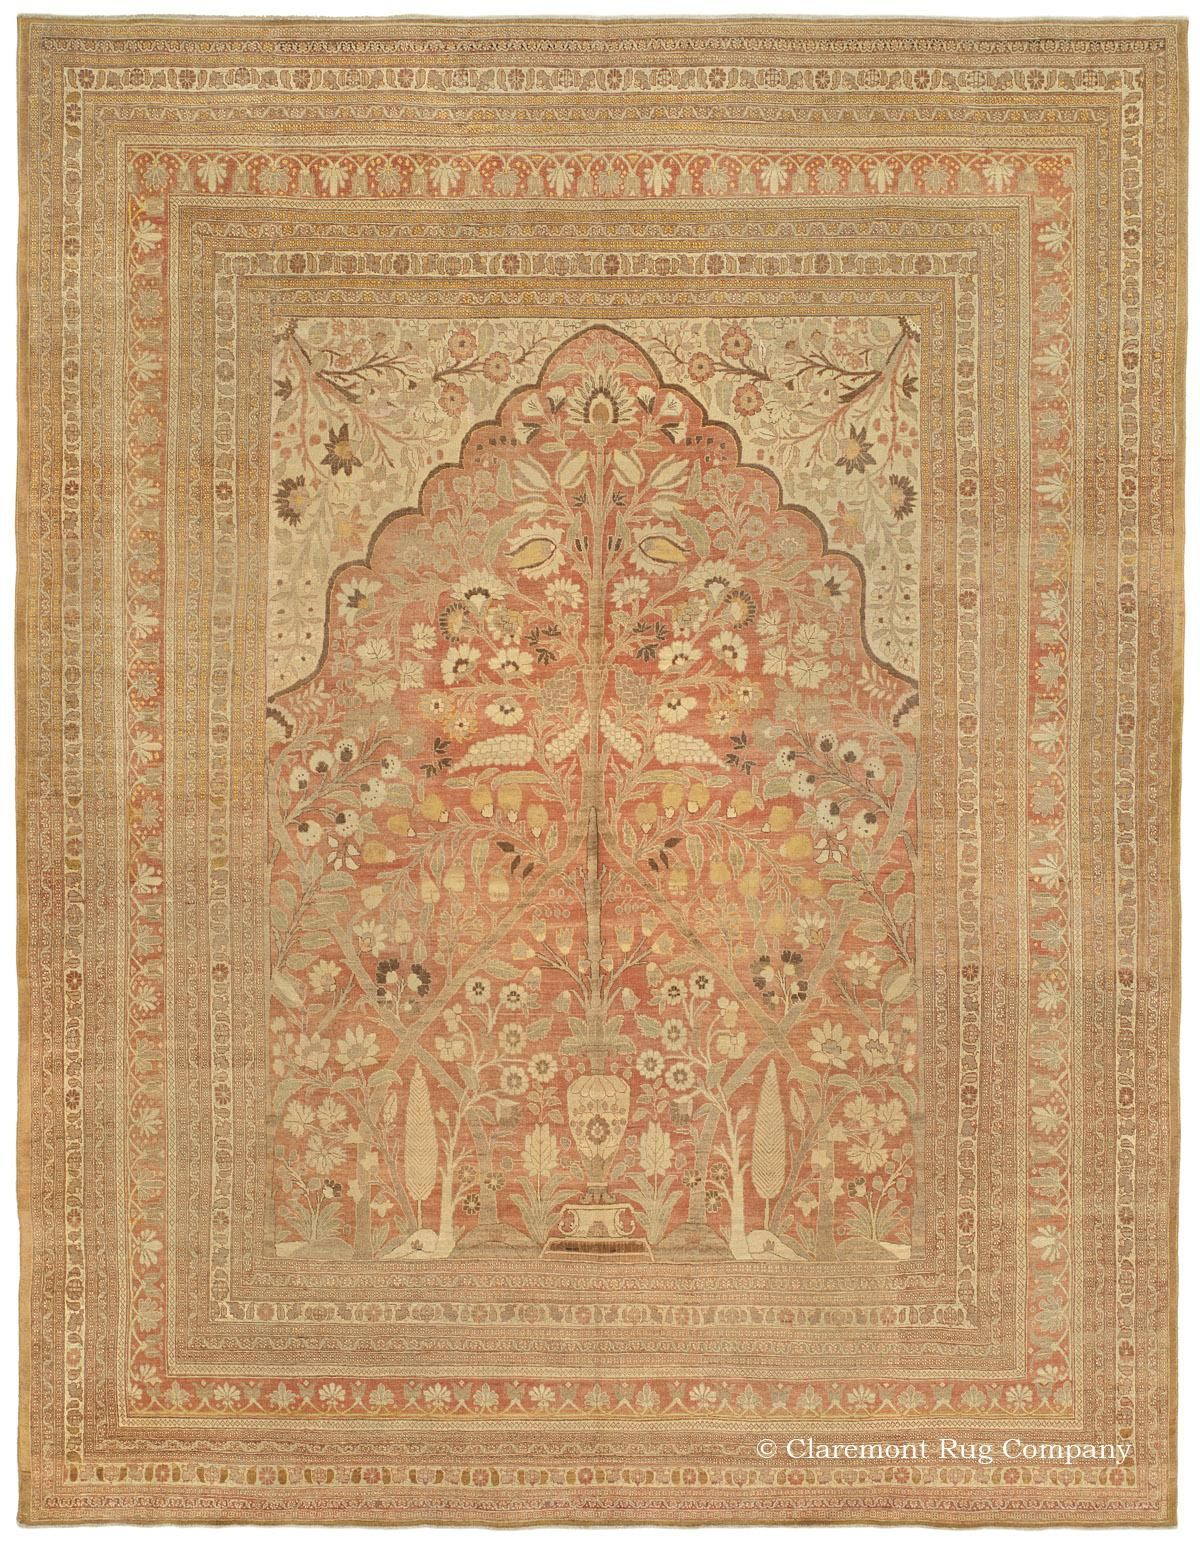 Hadji Jallili Haji Jalili Tabriz Garden Of Paradise 9ft 3in X 11ft 9in 3rd Quarter 19th Century Persian Rug Designs Rugs On Carpet Antique Oriental Rugs